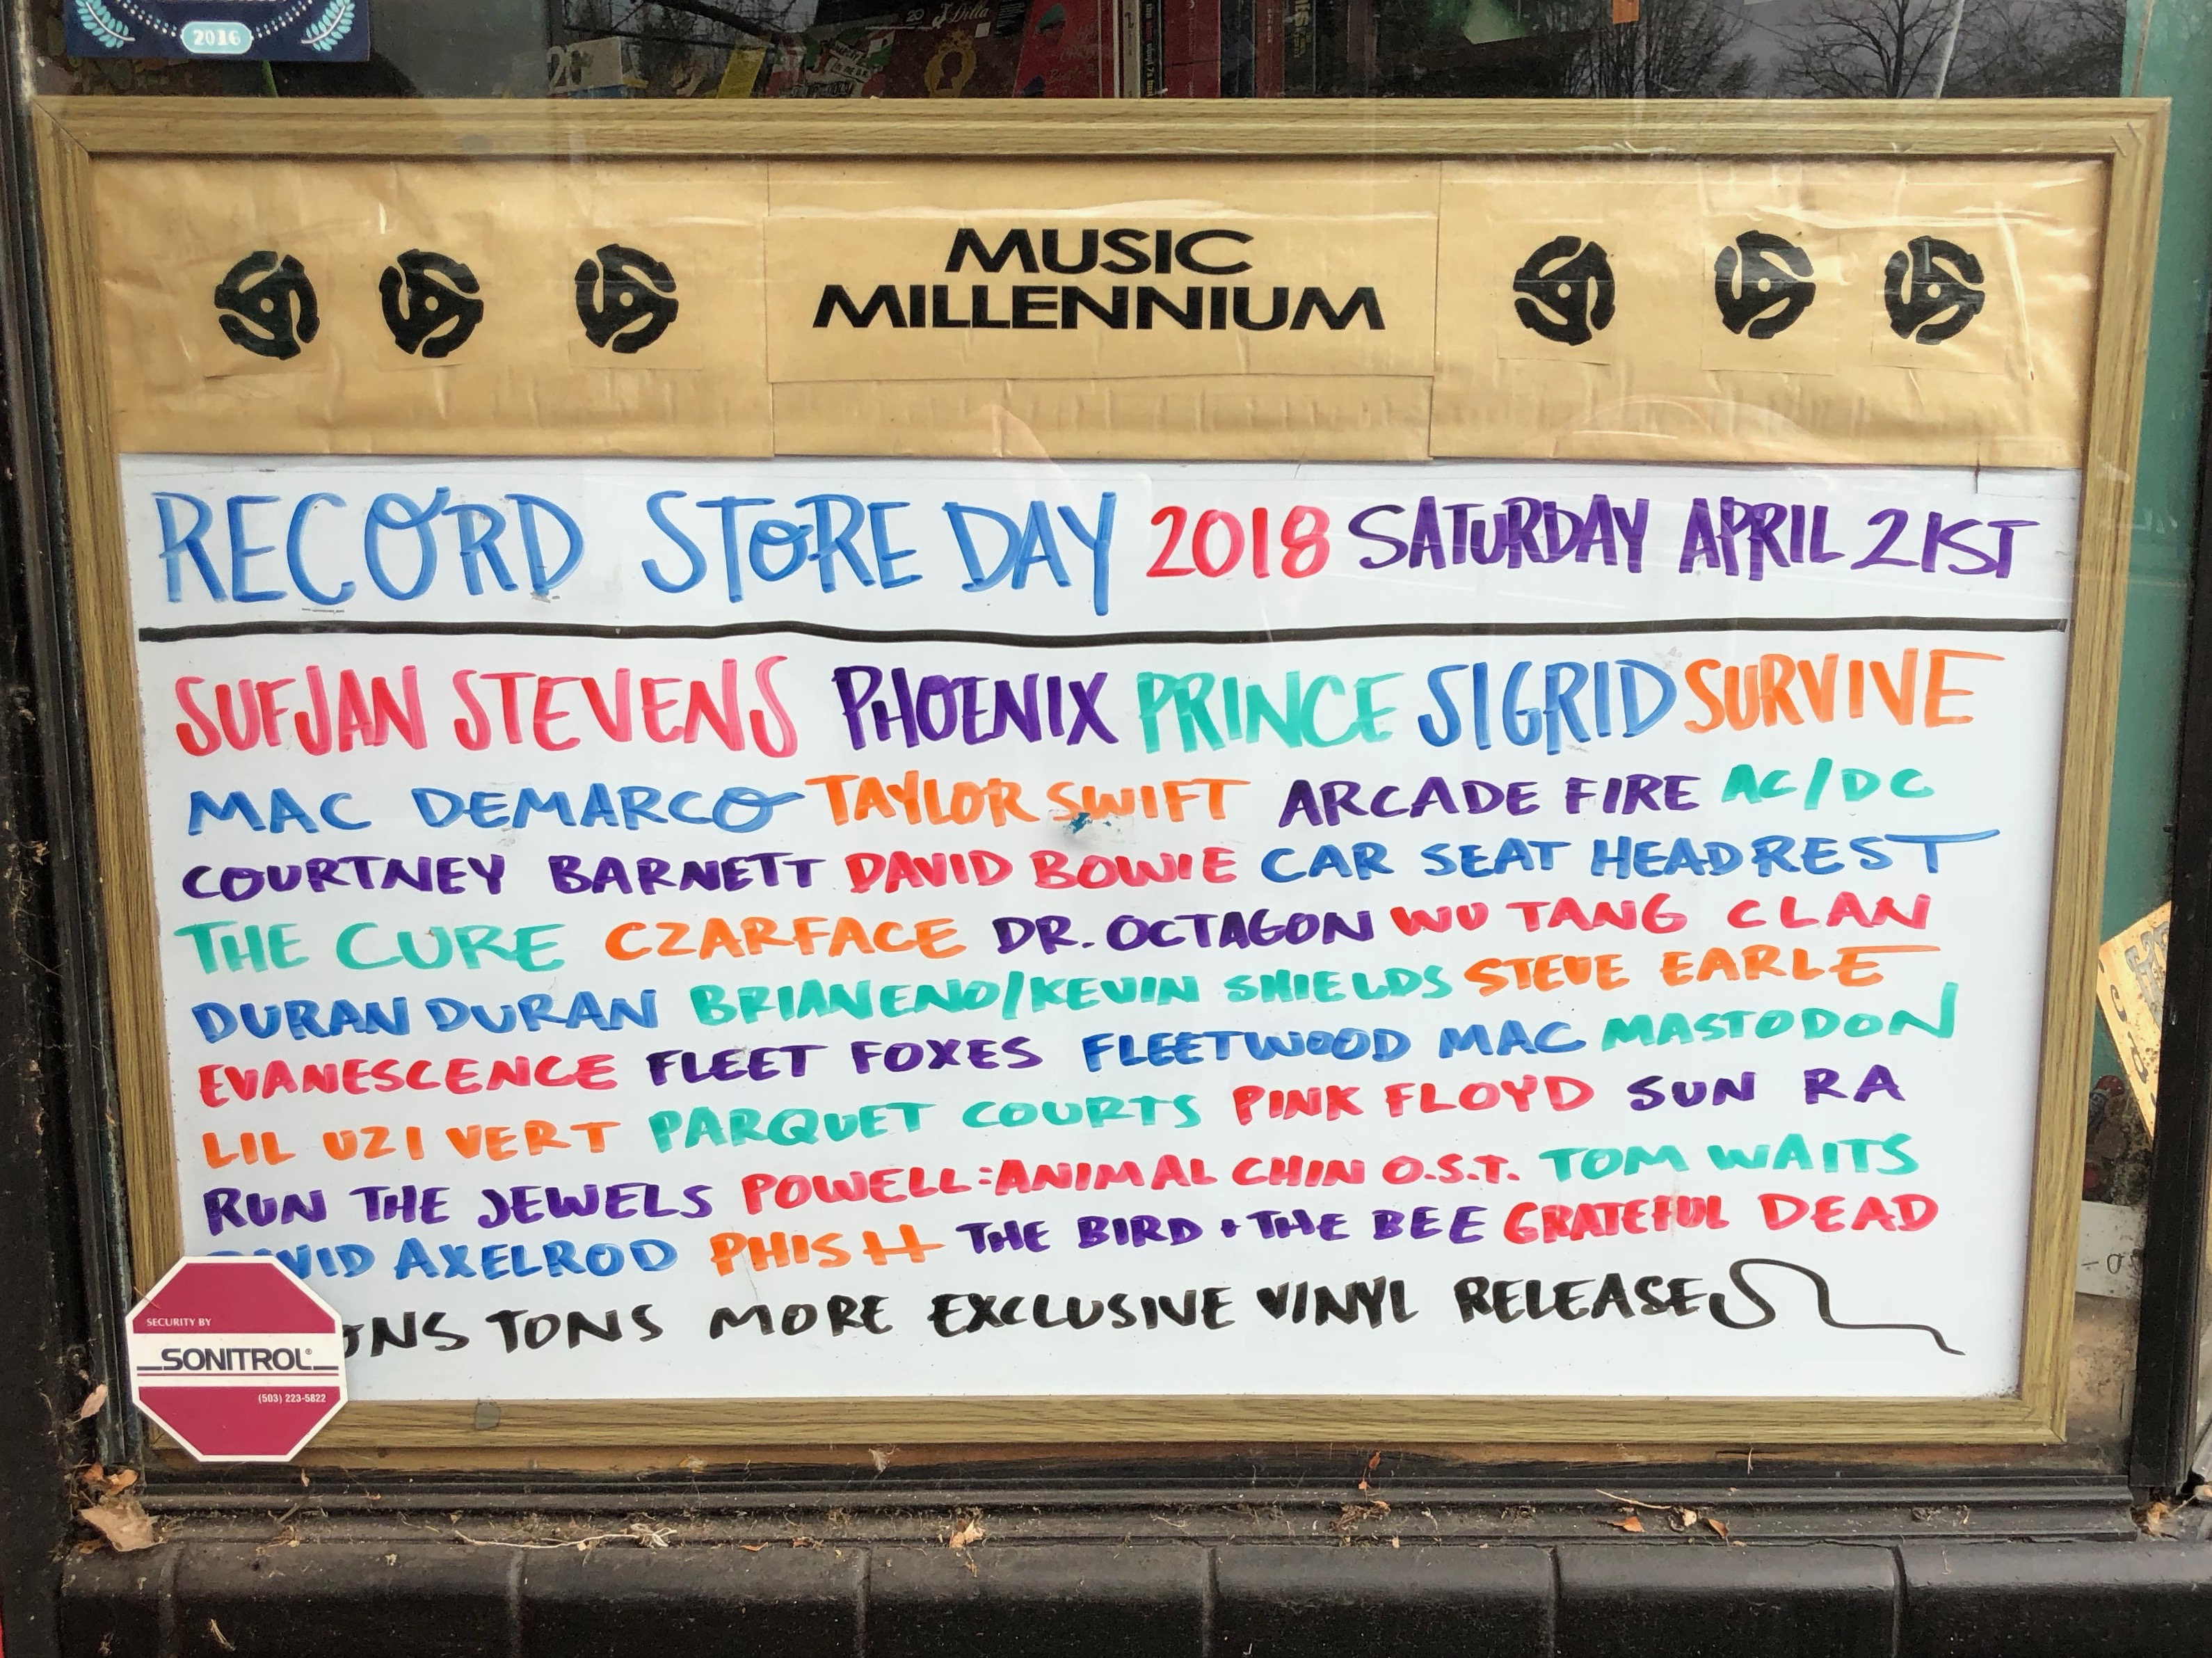 2018 Record Store Day is coming up on April 21st at Music Millennium.